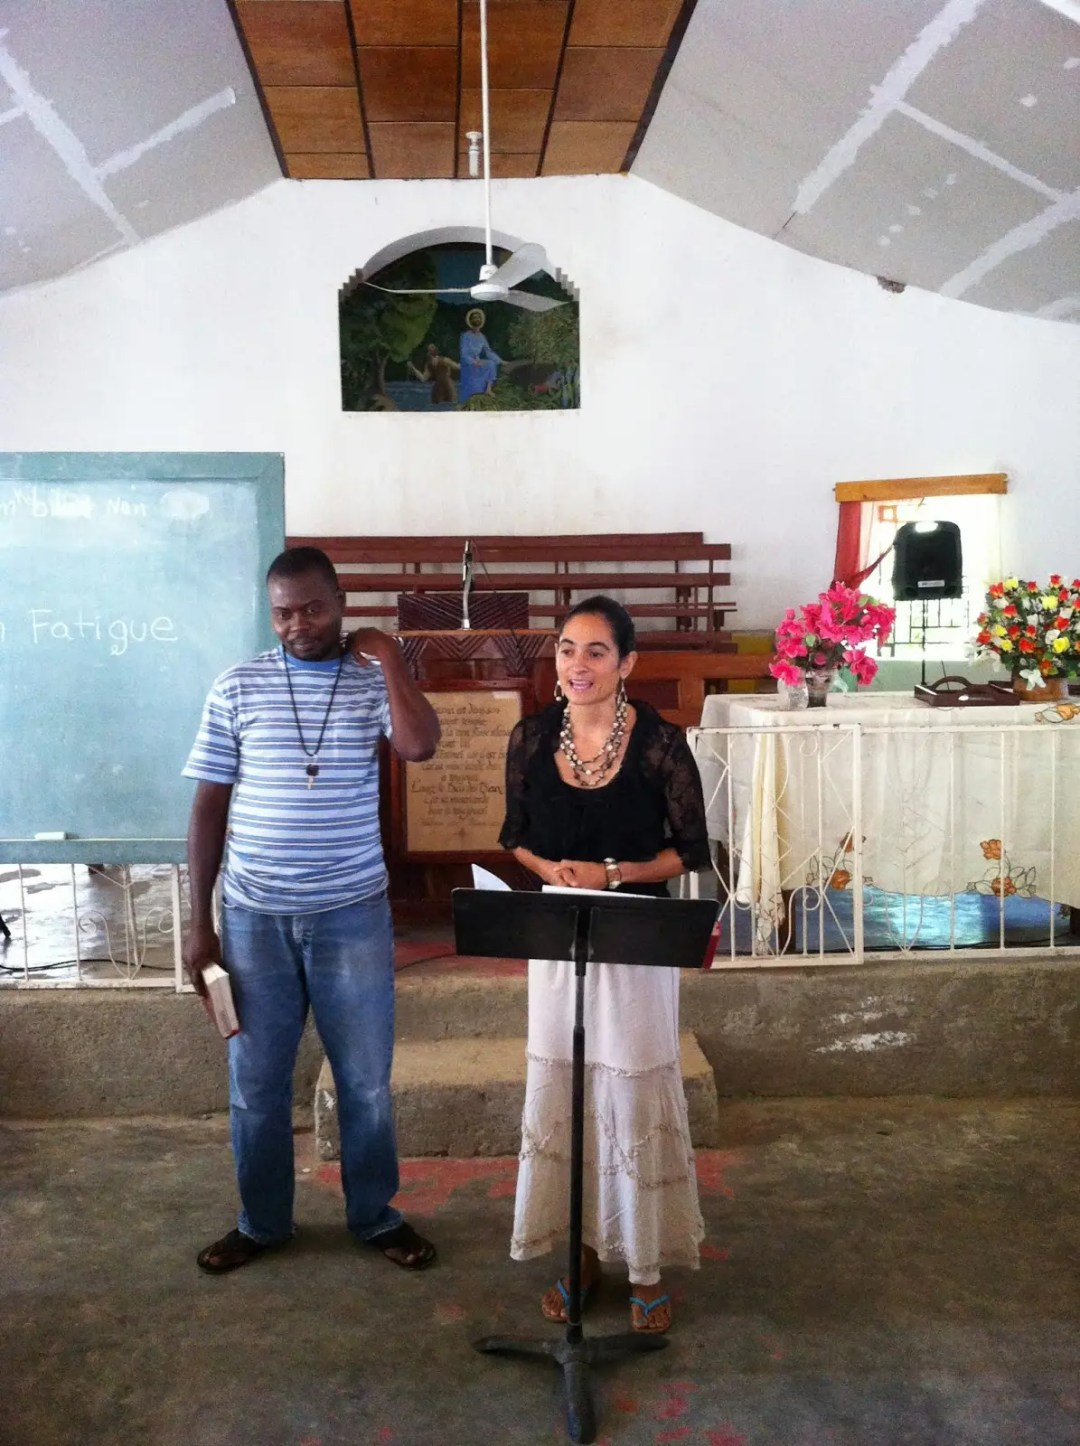 Speaking in Haiti